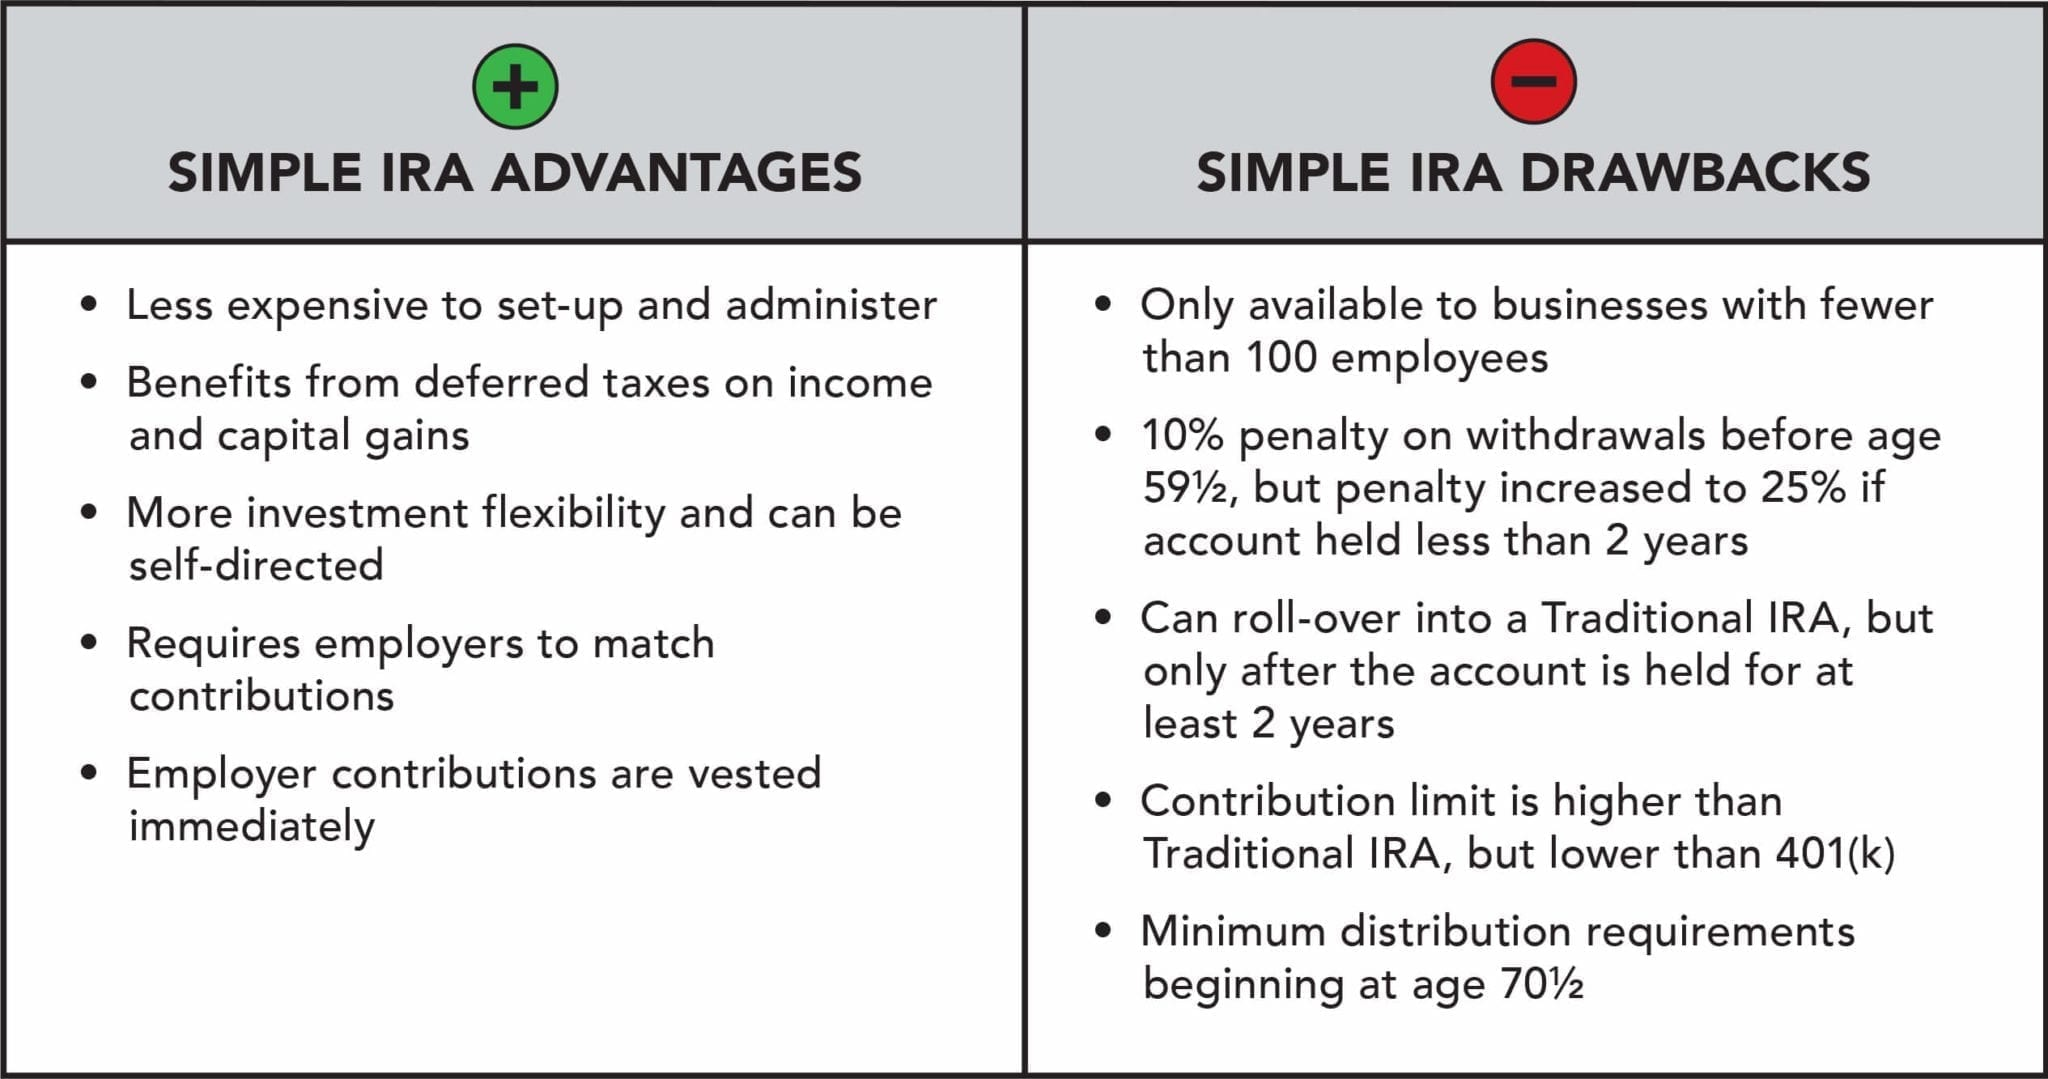 The SIMPLE IRA is similar to the 401(k) but has some specific advantages and drawbacks.